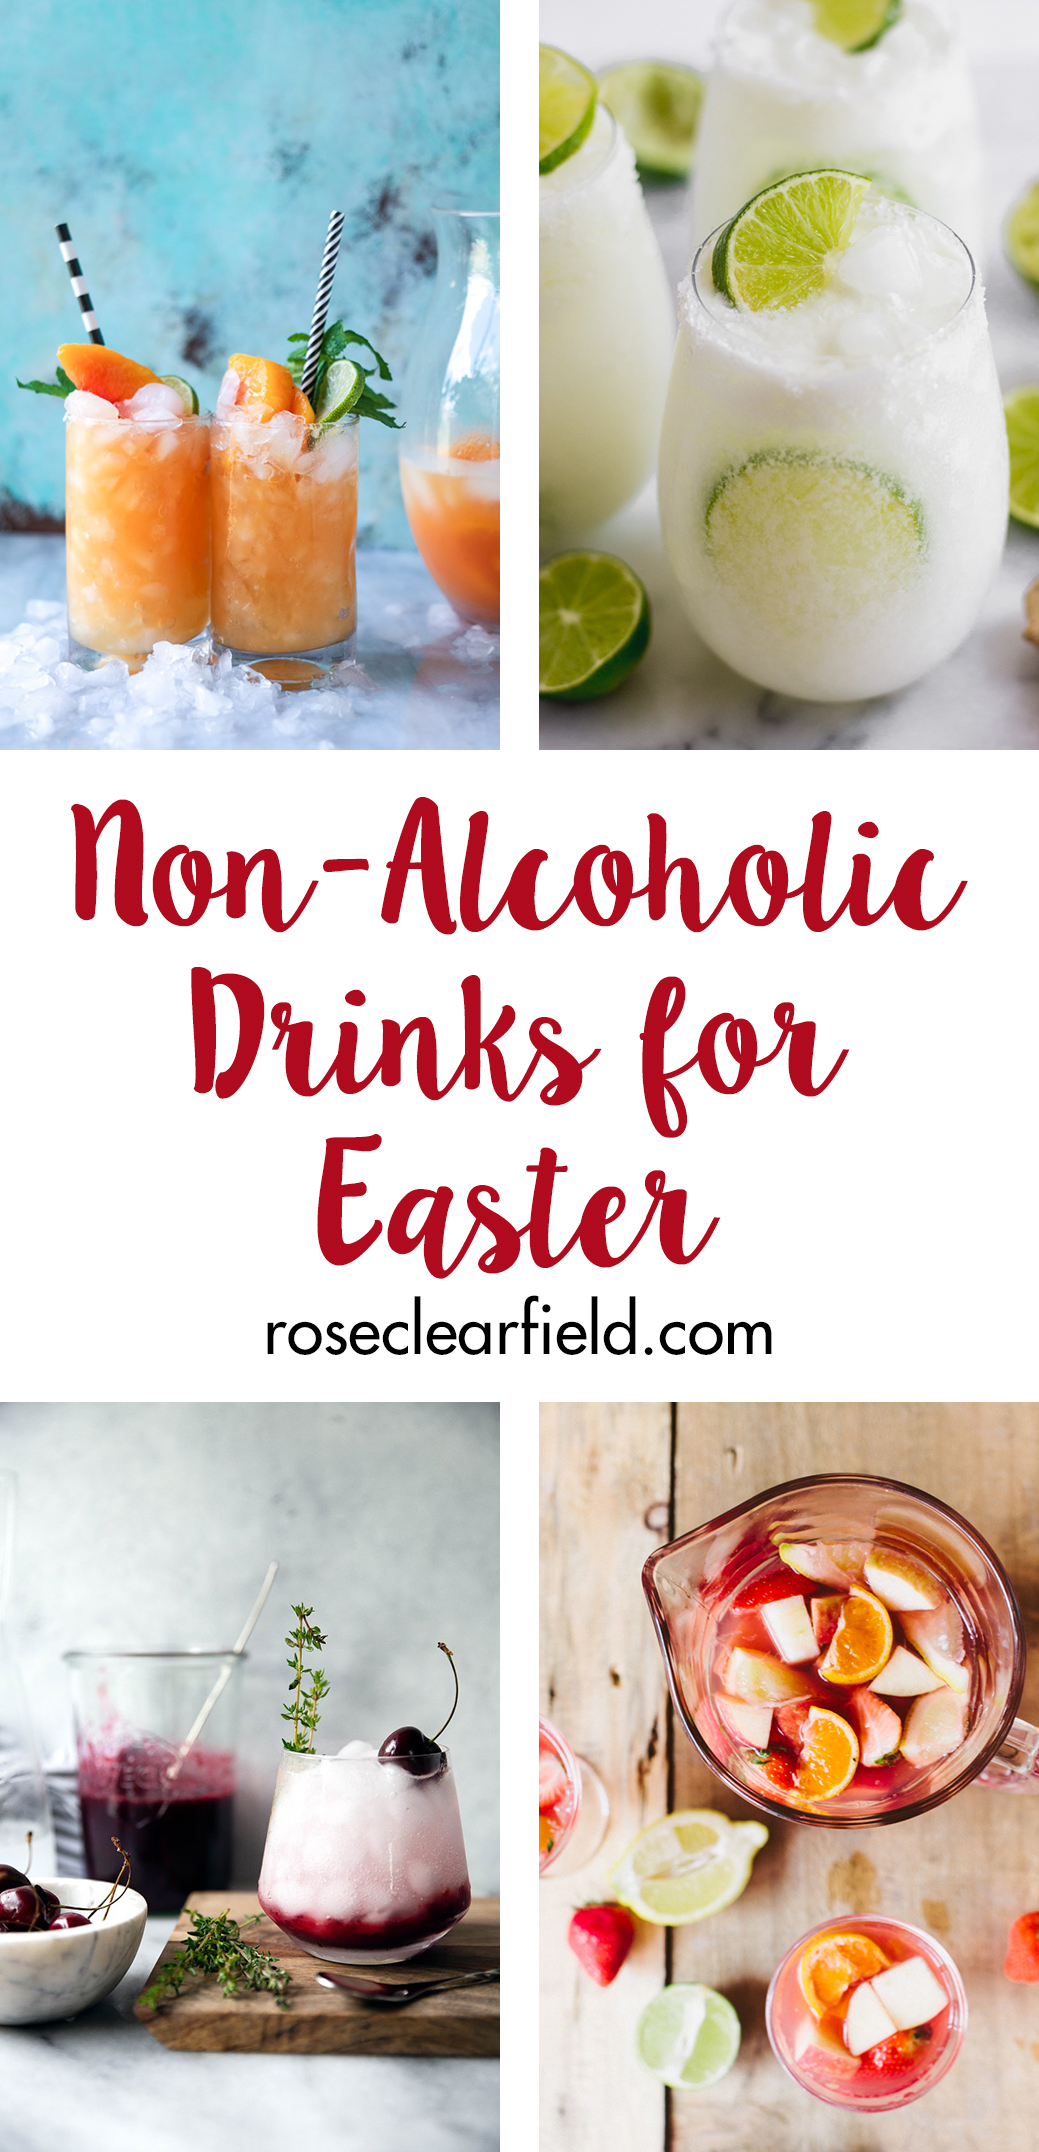 Non-alcoholic drinks for Easter. Whip up a refreshing beverage for your holiday brunch or dinner! #nonalcoholic #springdrinks #Easter | https://www.roseclearfield.com